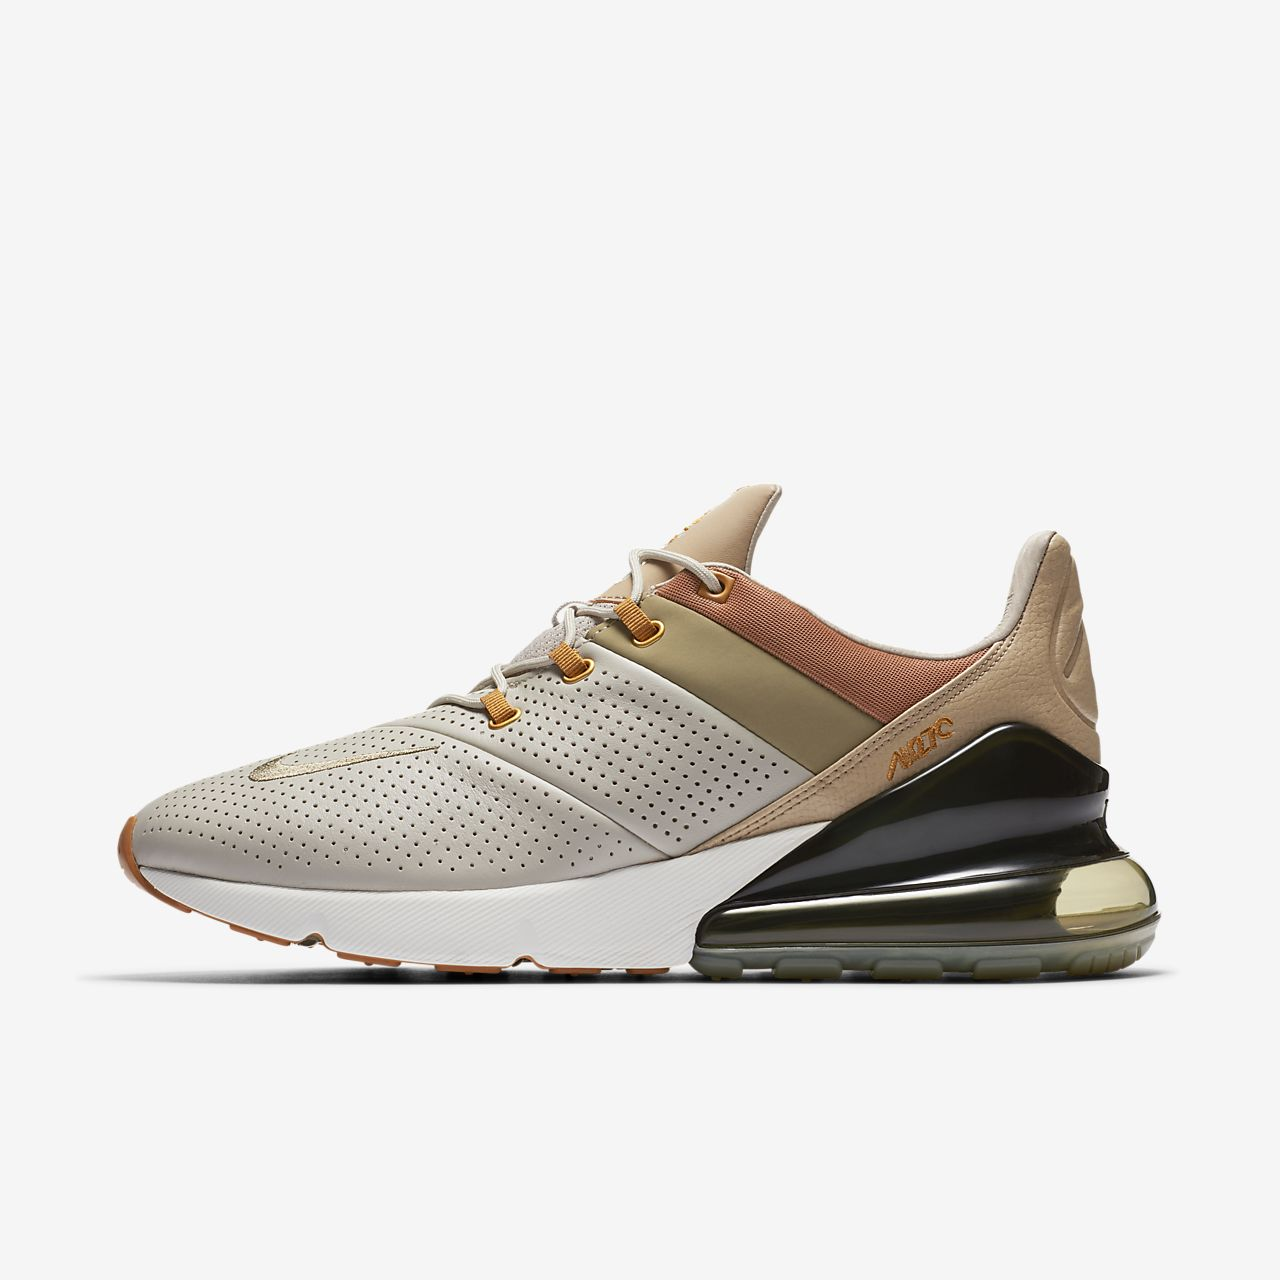 cheap for discount 5679c c5584 Nike Air Max 270 Premium Men's Shoe. Nike.com ZA